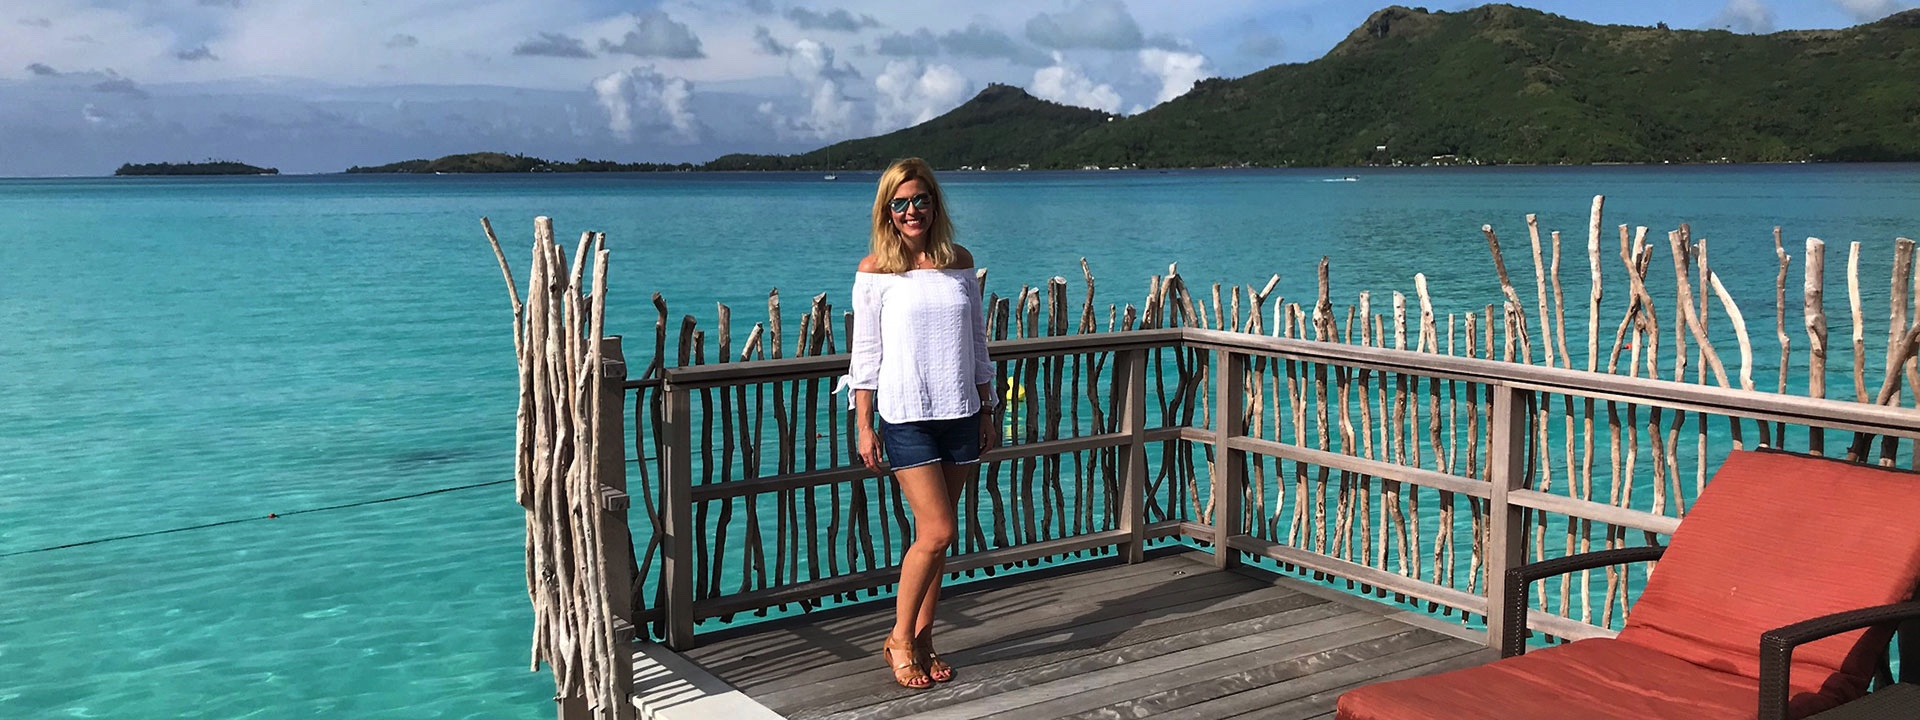 Dream Job: Luxury Travel Influencer Tiffany Dowd